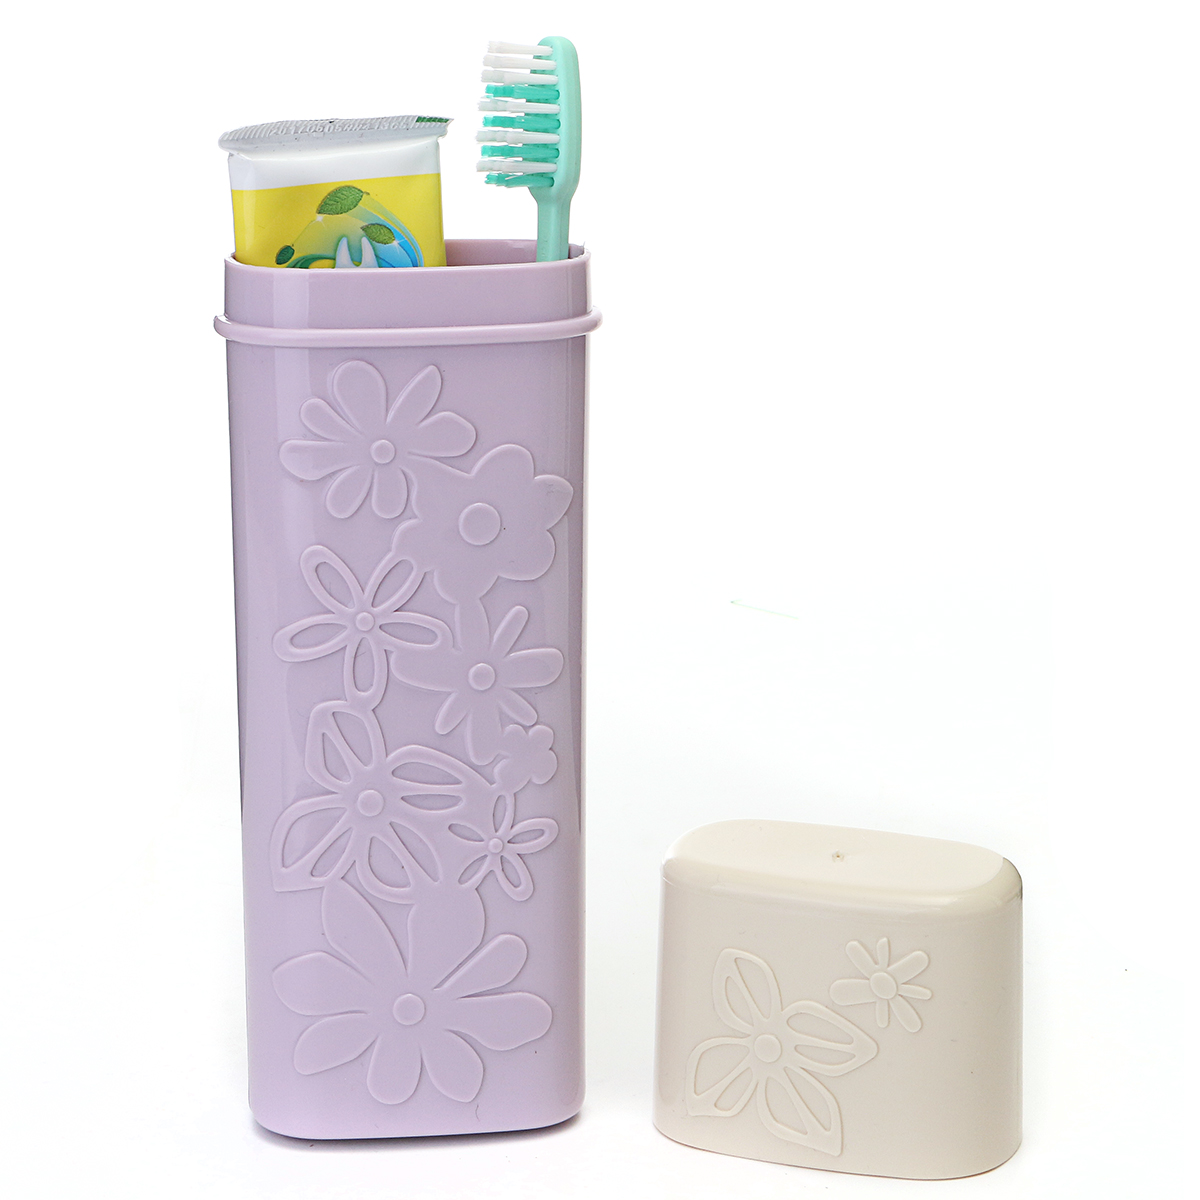 4 Colors Outdoor Travel Toothbrush Tube Cover Camping Toothpaste Protect Holder Case Storage Box